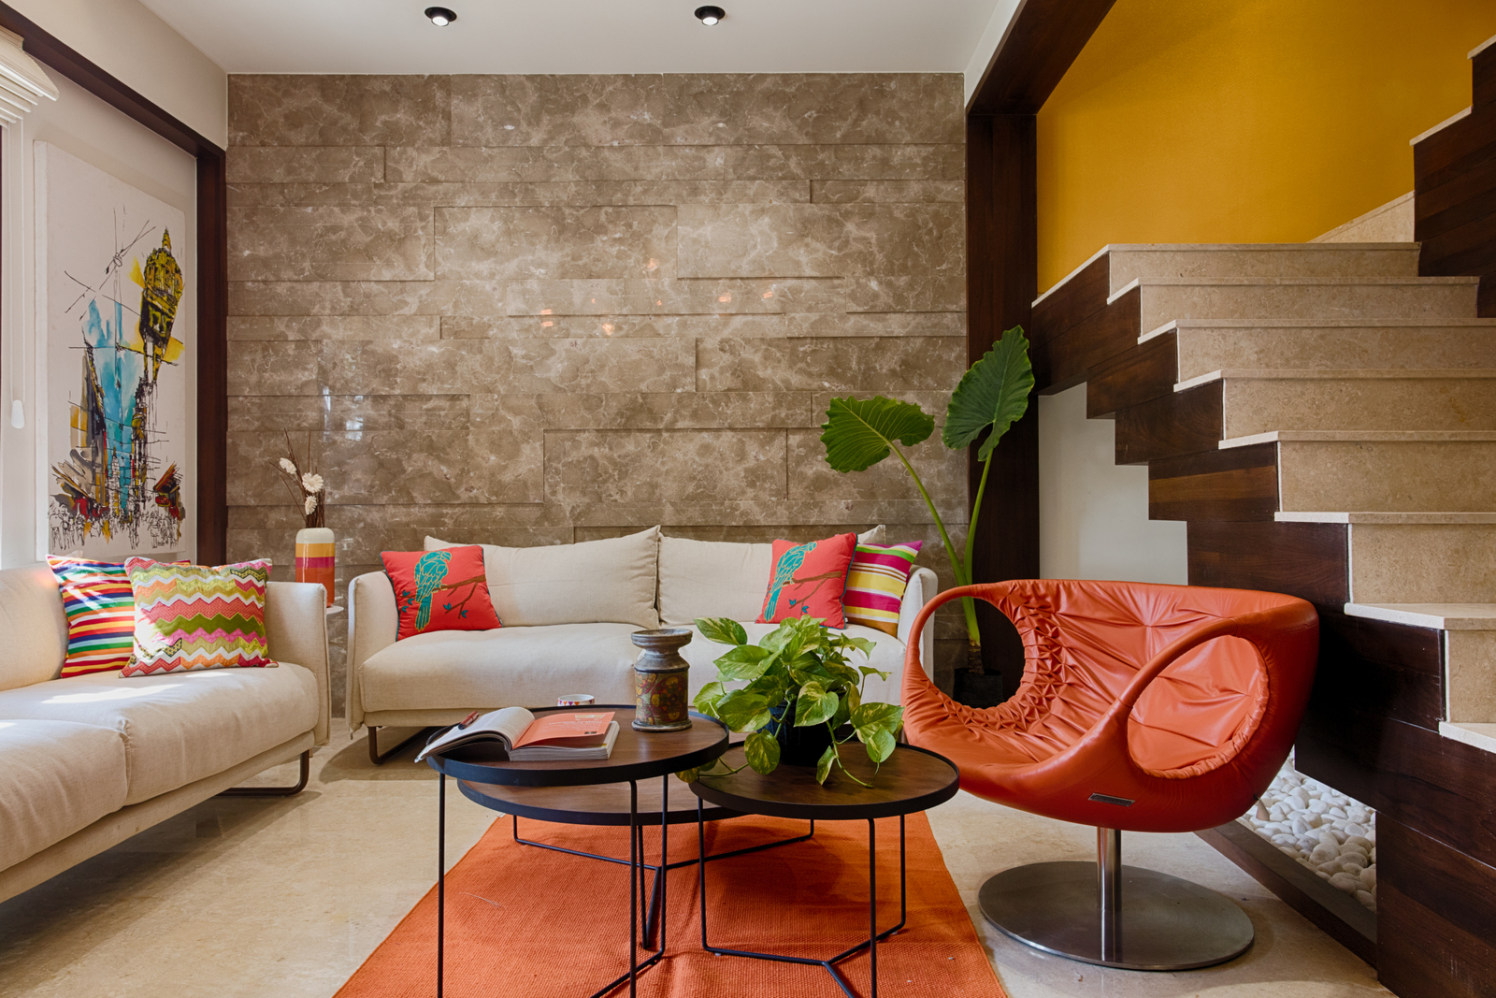 Beige Abstract Wall And Cream Sofas With Patterned Cushions And Orange Lounge Chair by Dhaval Patel Living-room Modern | Interior Design Photos & Ideas